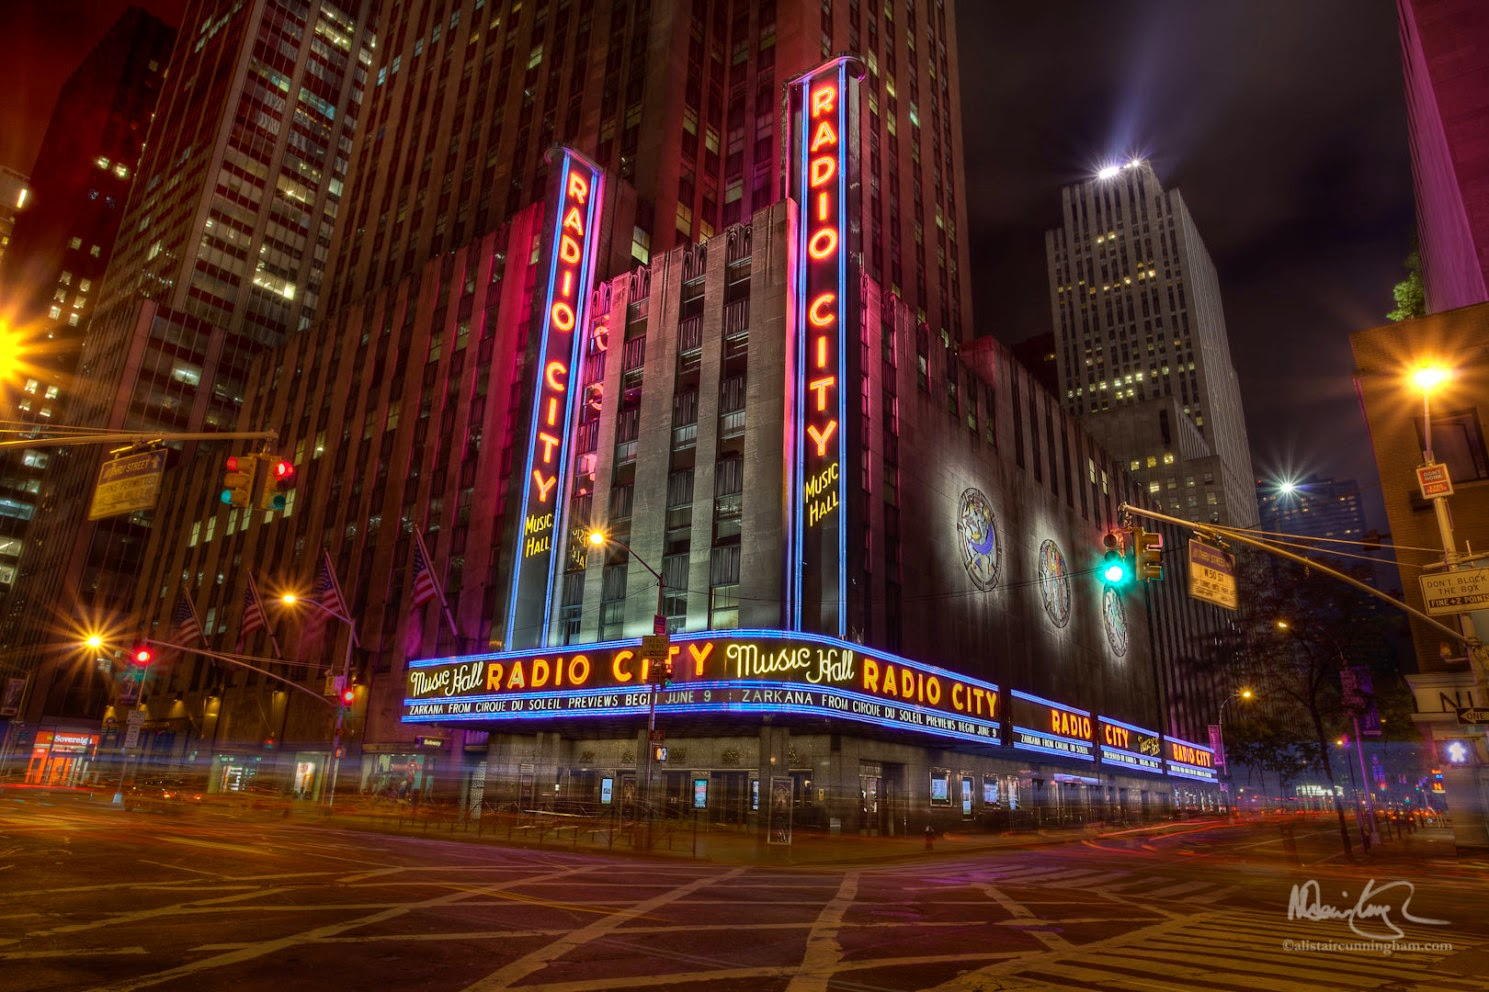 Alistair Cunningham, fotografía HDR, Radio City Music Hall, New York